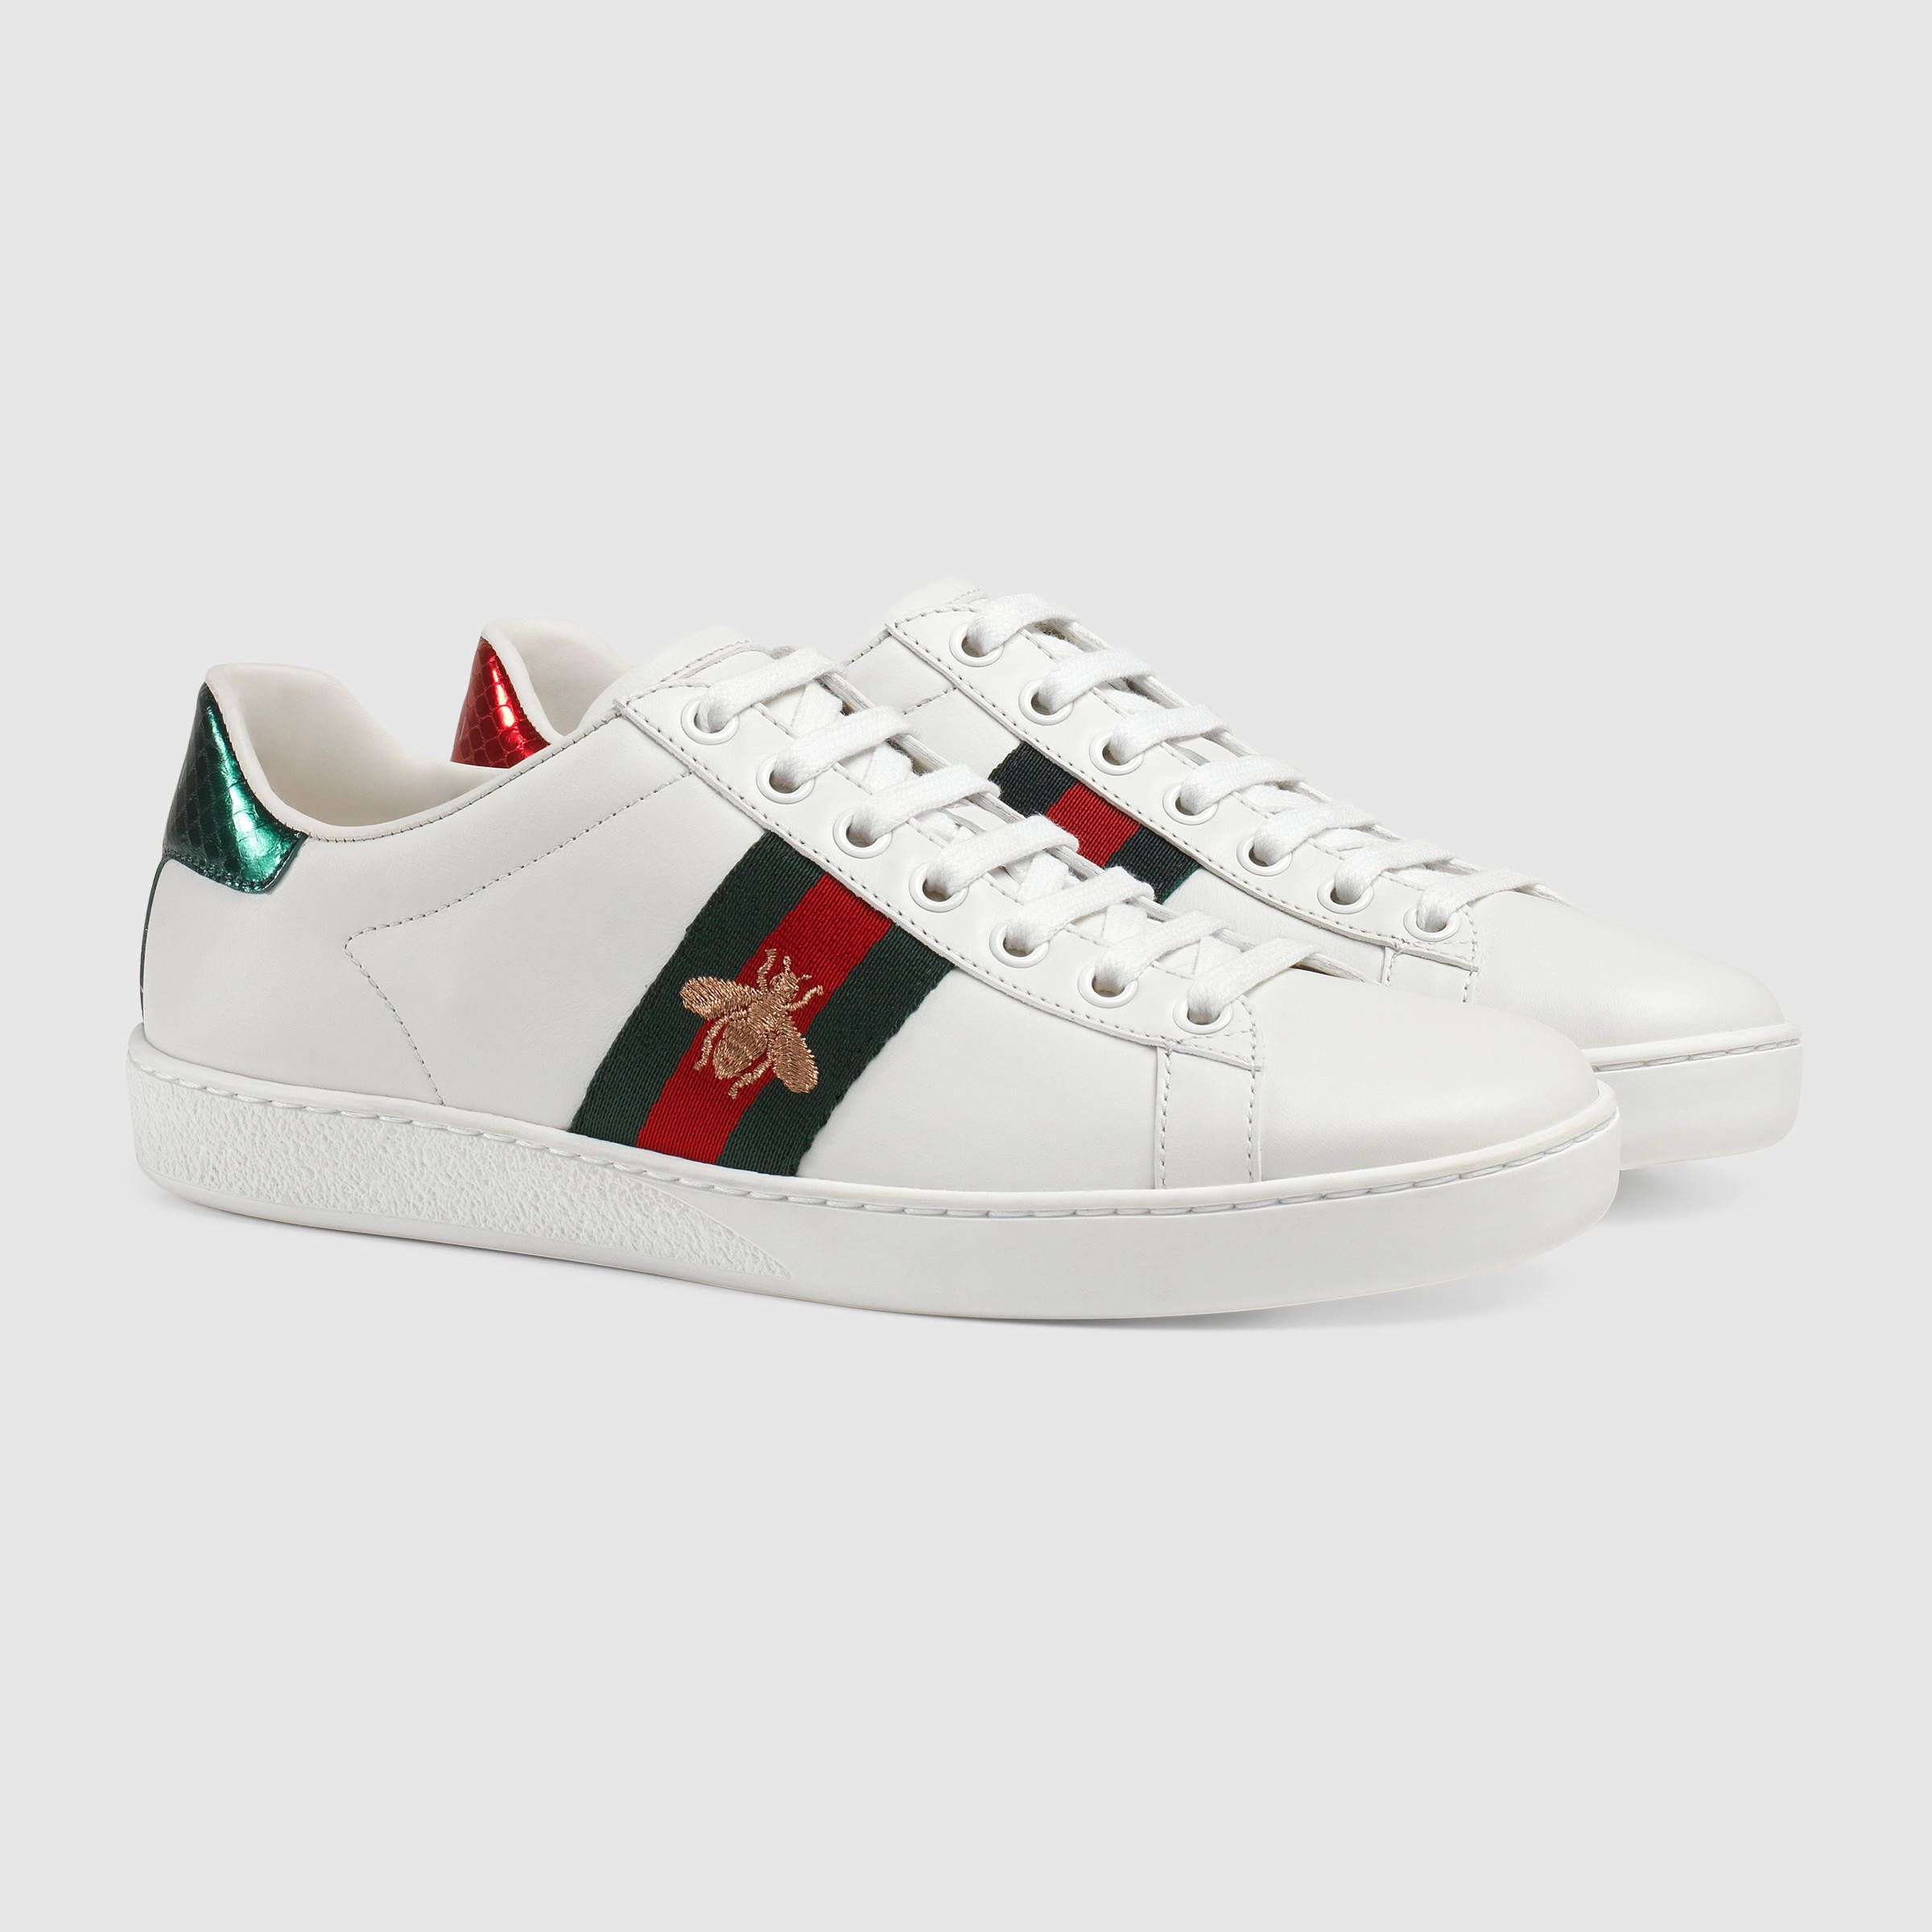 Gucci Ace Embroidered Sneaker Detail 2 Gucci Ace Sneakers Gucci Shoes Sneakers Sneakers